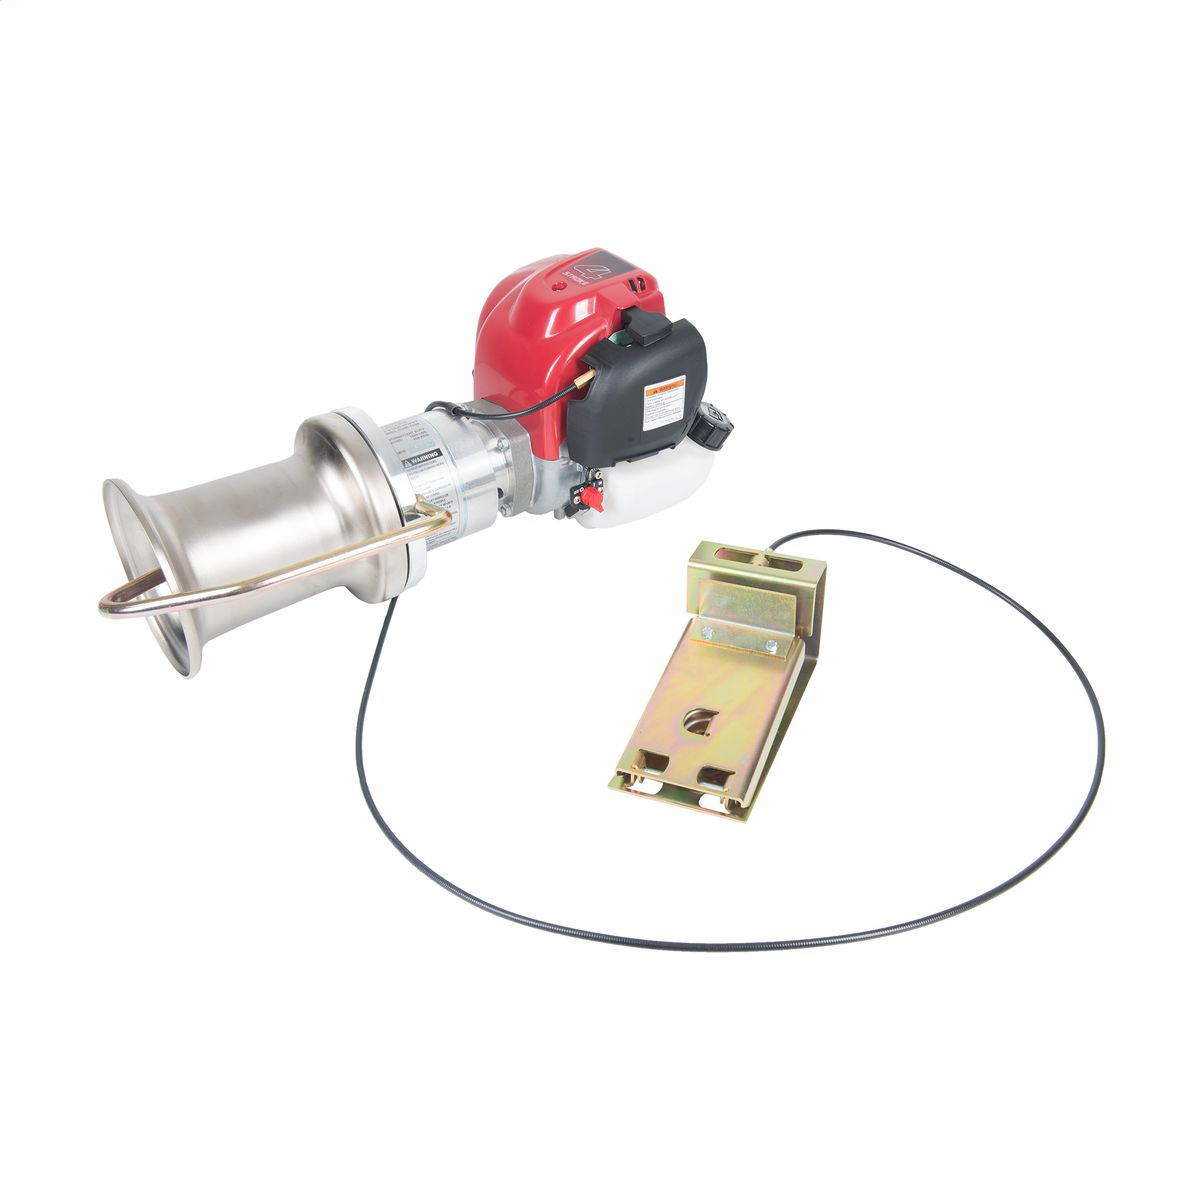 Capstan Hoist 1,000 lb. (Gas)   C3081190   Hubbell Power Systems on